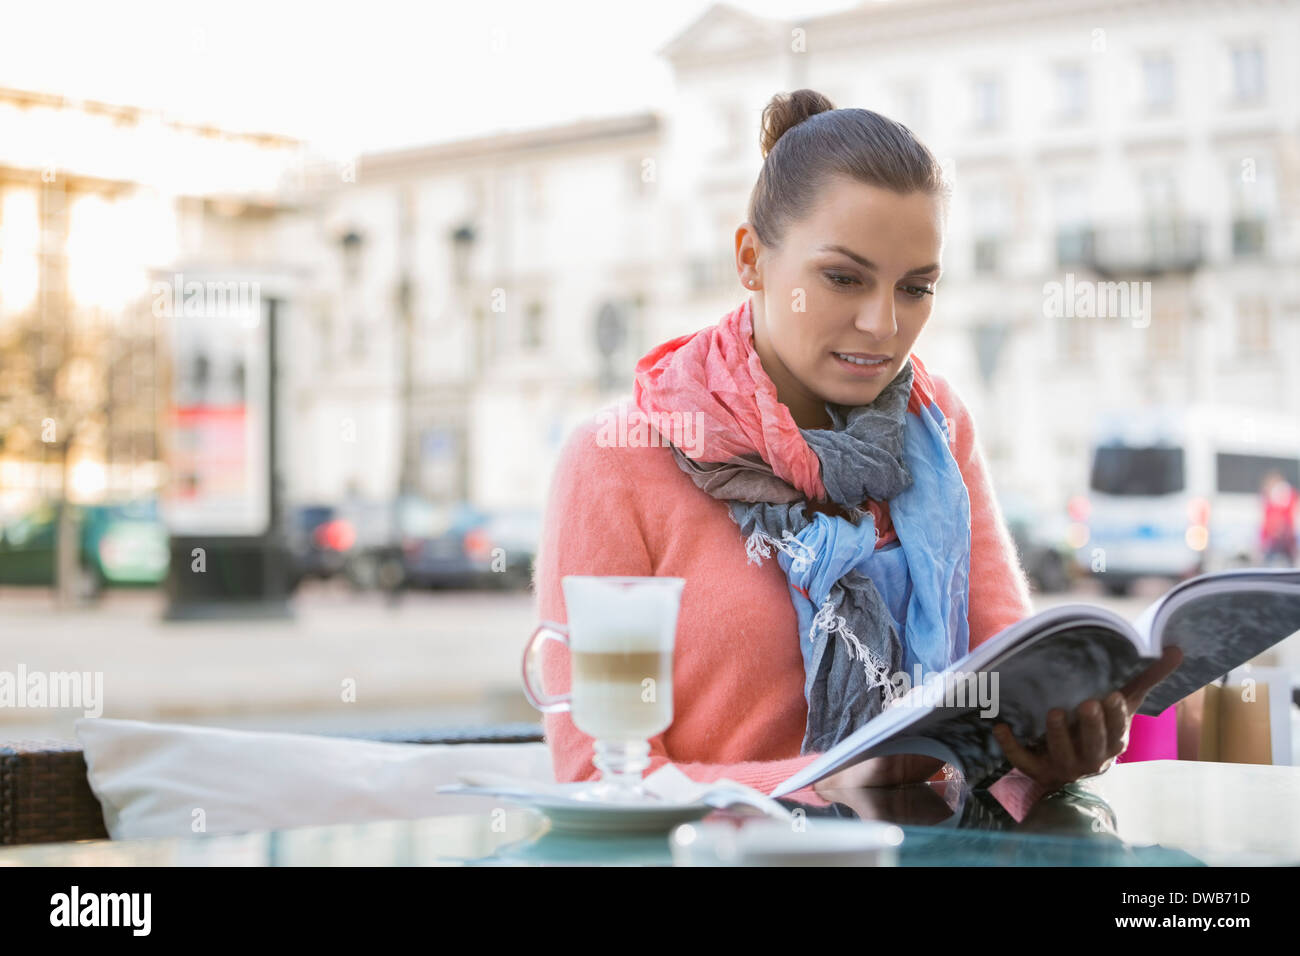 Young woman reading book at sidewalk cafe - Stock Image